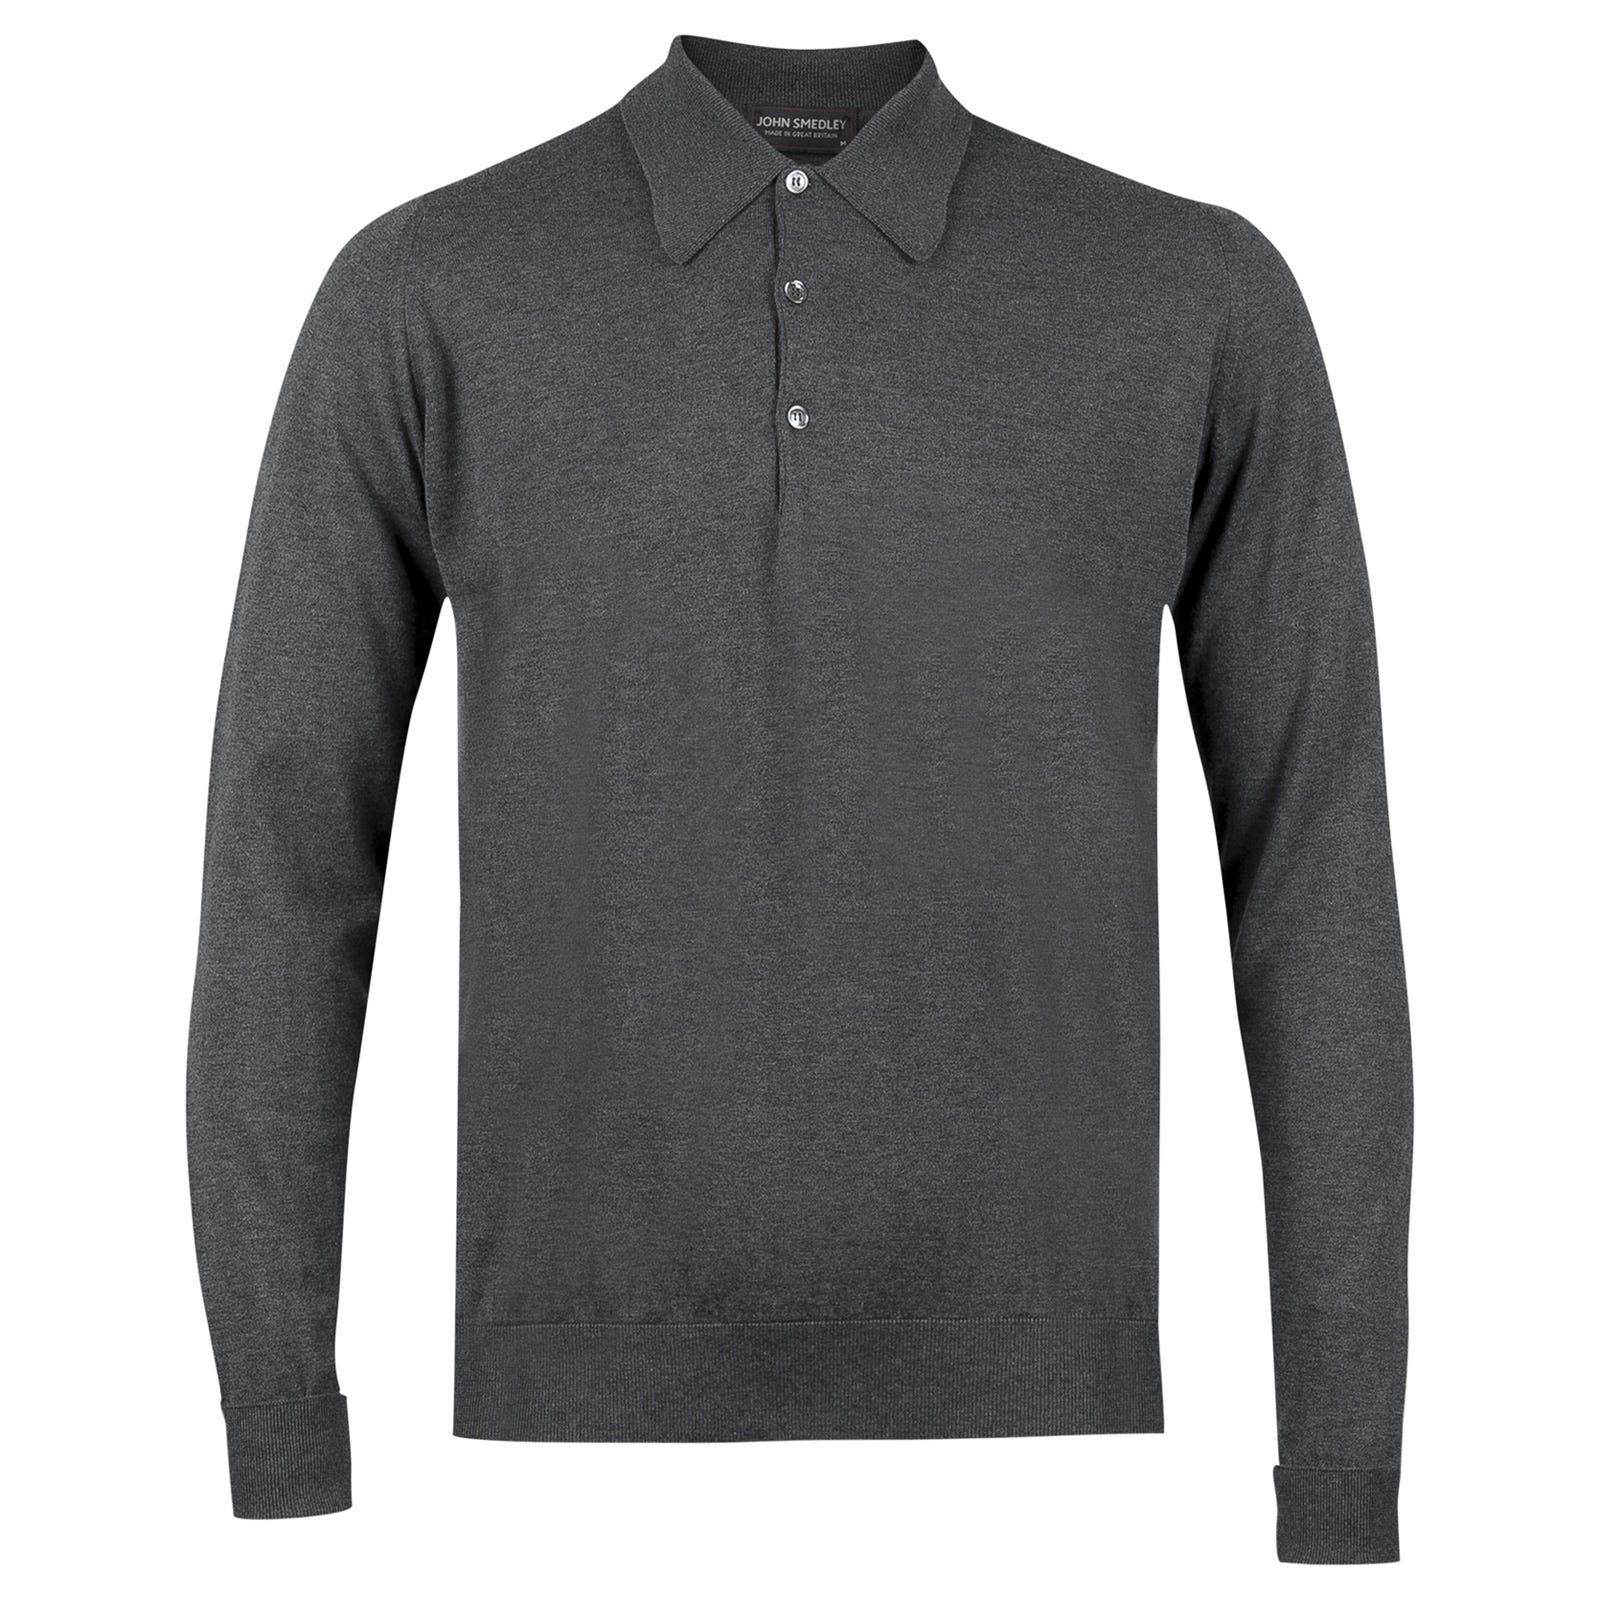 John Smedley finchley Sea Island Cotton Shirt in Charcoal-S